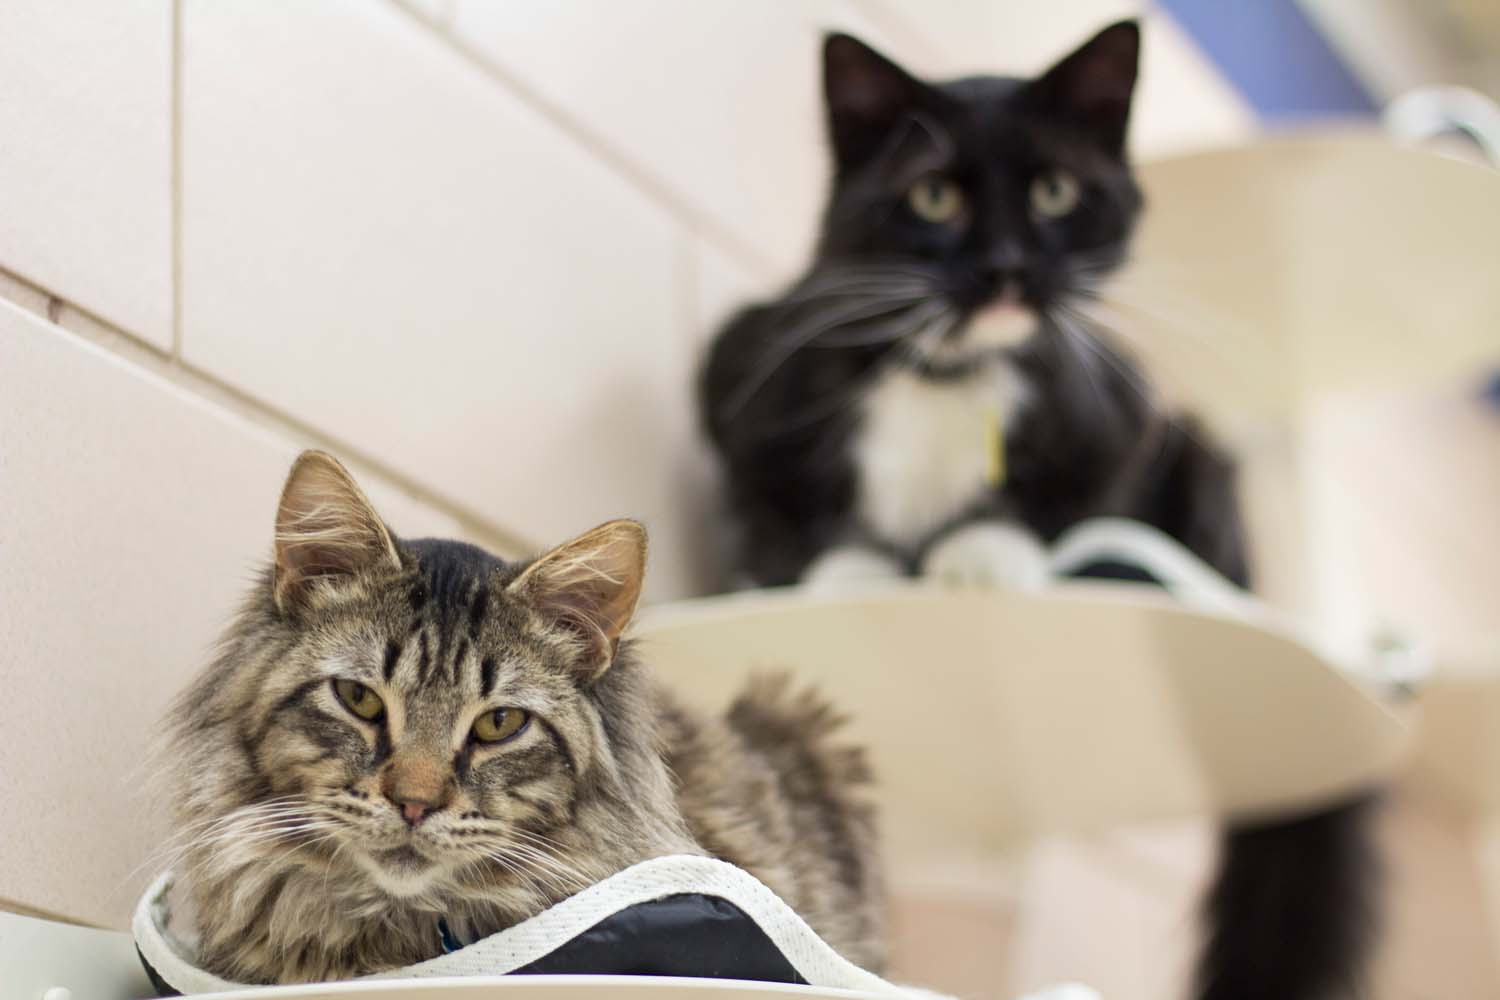 Two cats in shelter